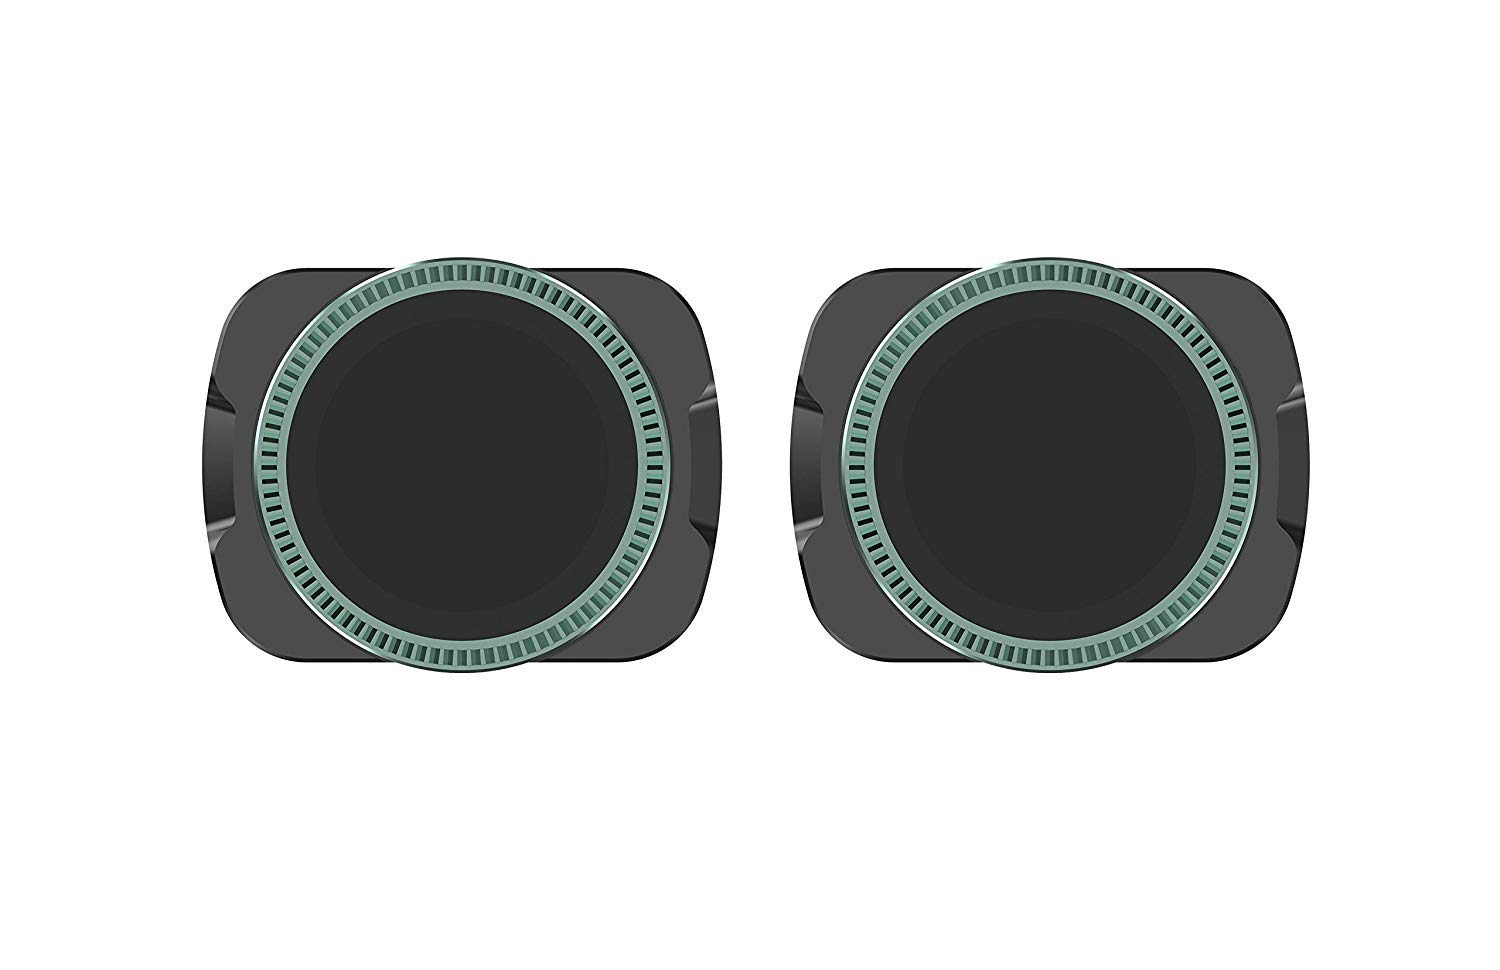 2 Pack 6-9 f-Stops VND Filter Compatible with dji Osmo Pocket Skyreat Variable ND Filters 2-5 f-Stops